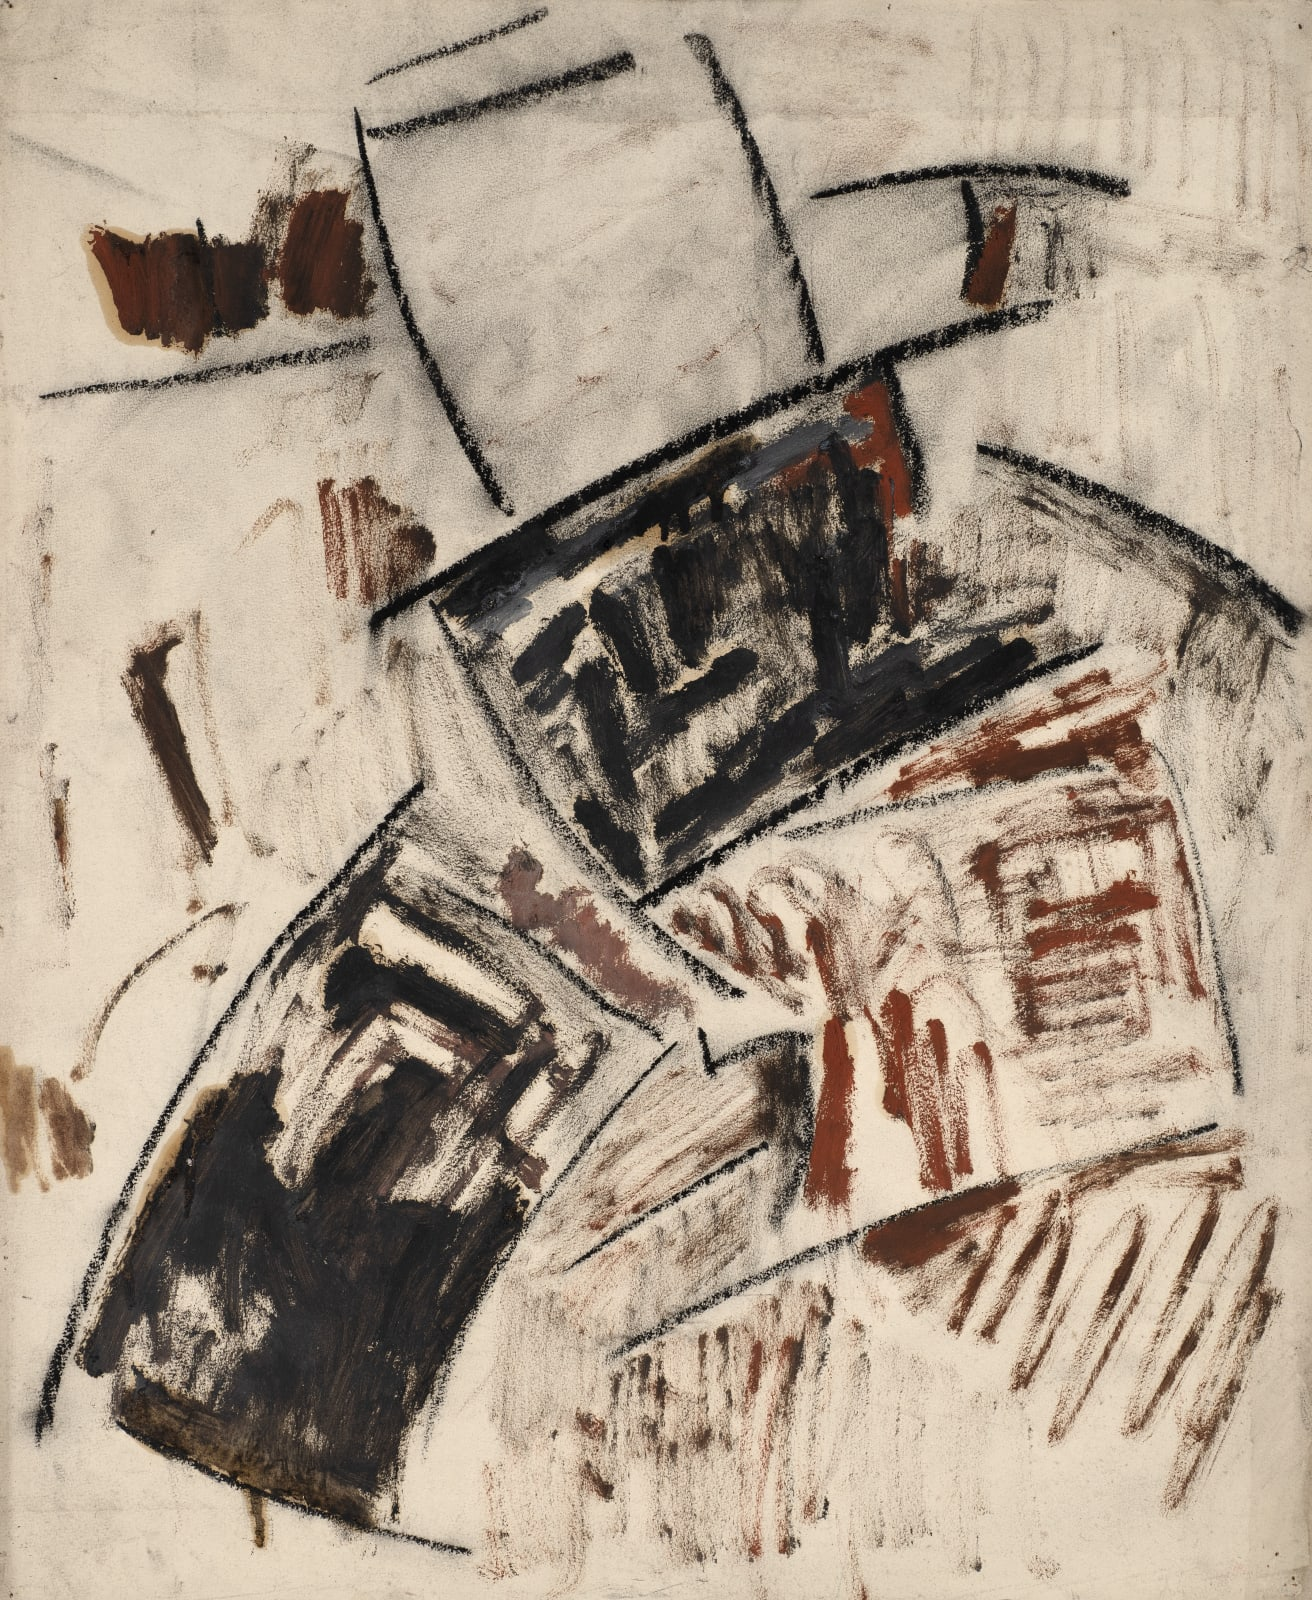 Untitled, c. 1956-60 Oil on paper laid down on board 56 x 46cm The Gustav Metzger Foundation